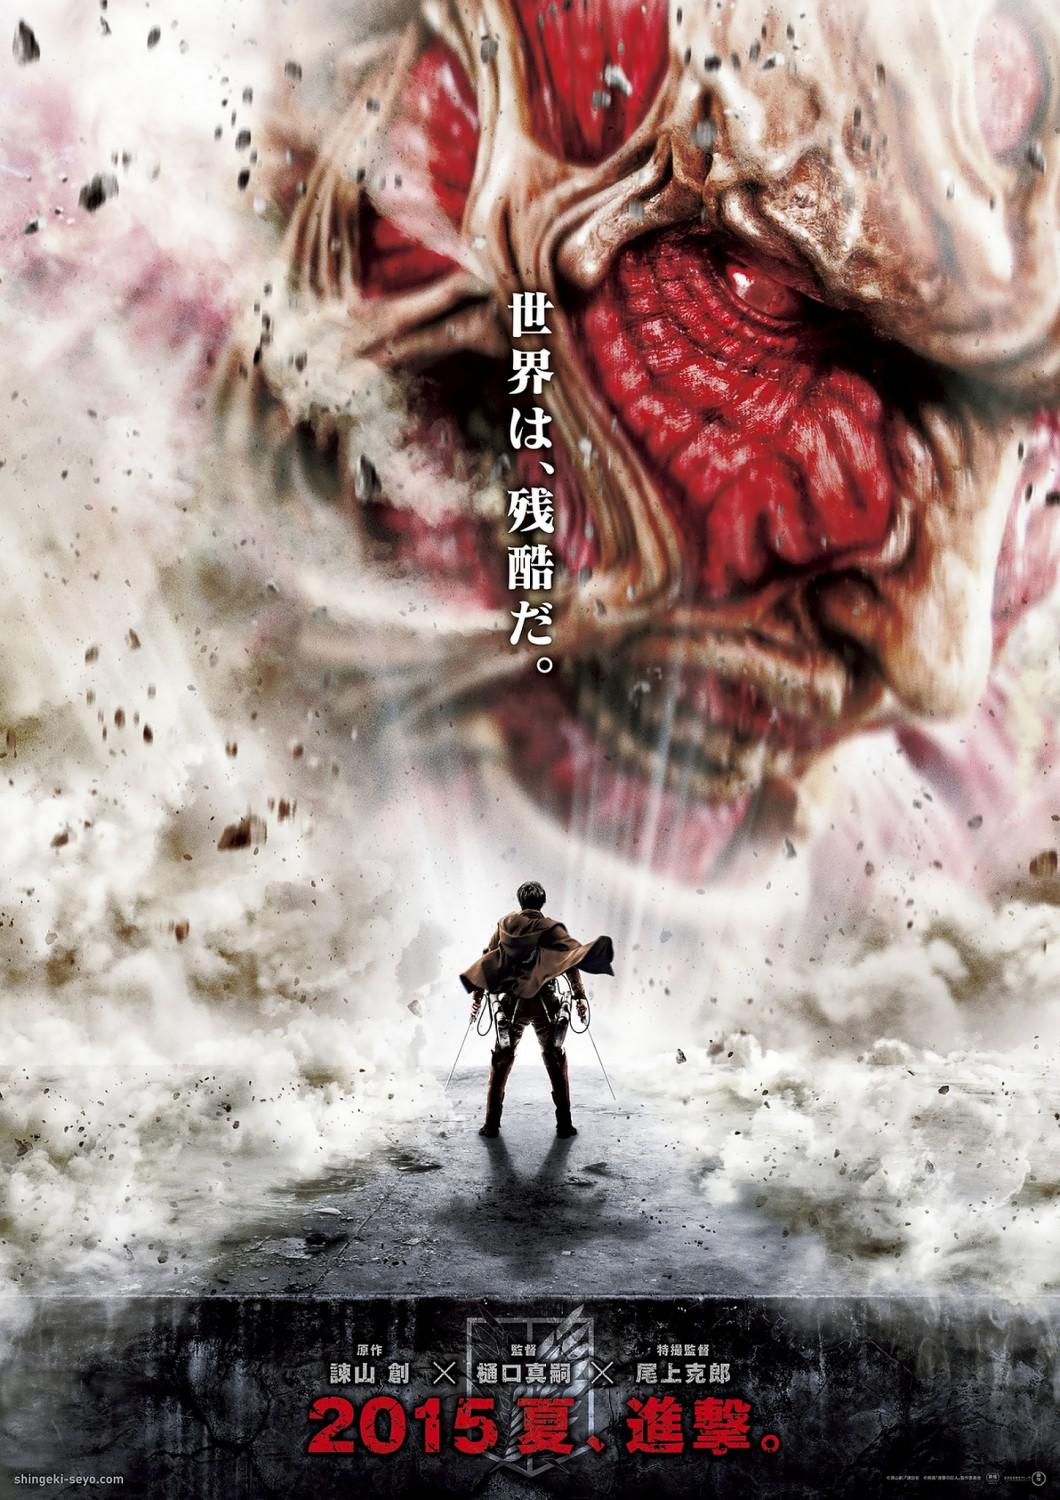 Attacco dei Giganti 1 - Shingeki no kyojin - Attack on Titan live action - poster